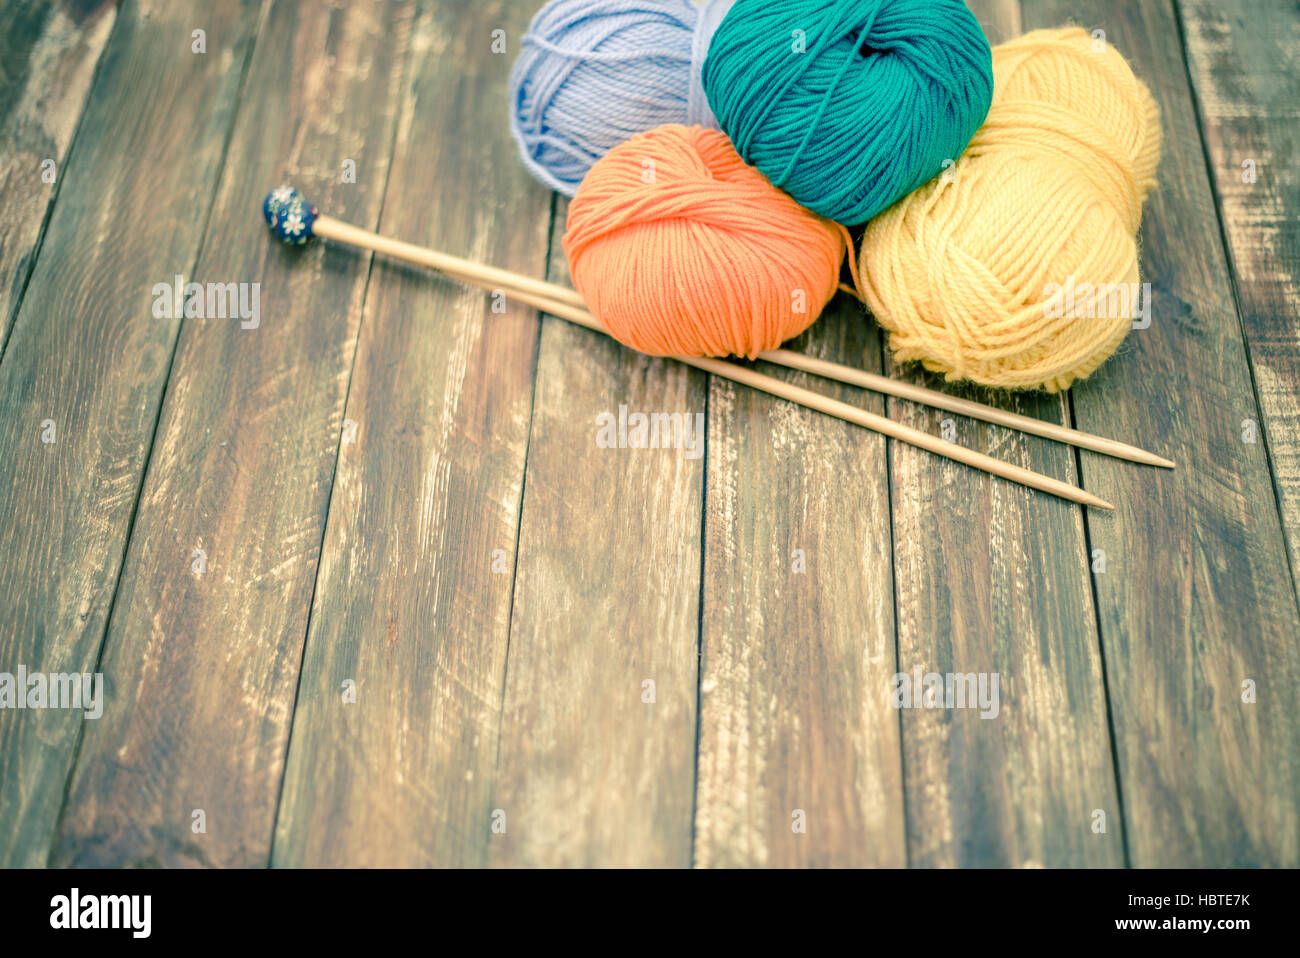 Yarn With Knitting Needles On Wooden Background Stock